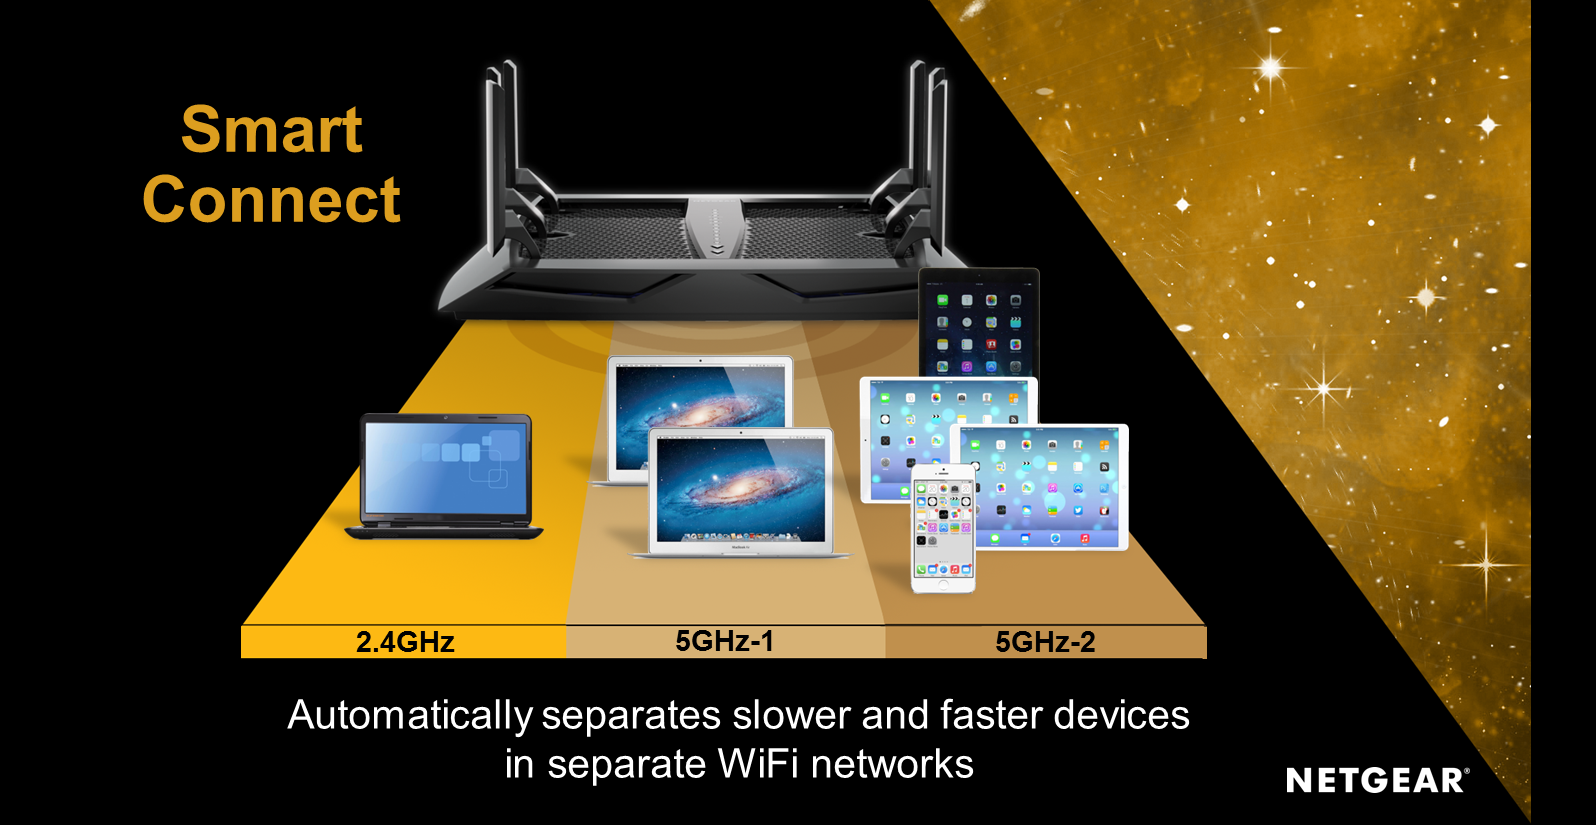 Netgear announces tri-band Nighthawk X6 Wi-Fi router | TechHive